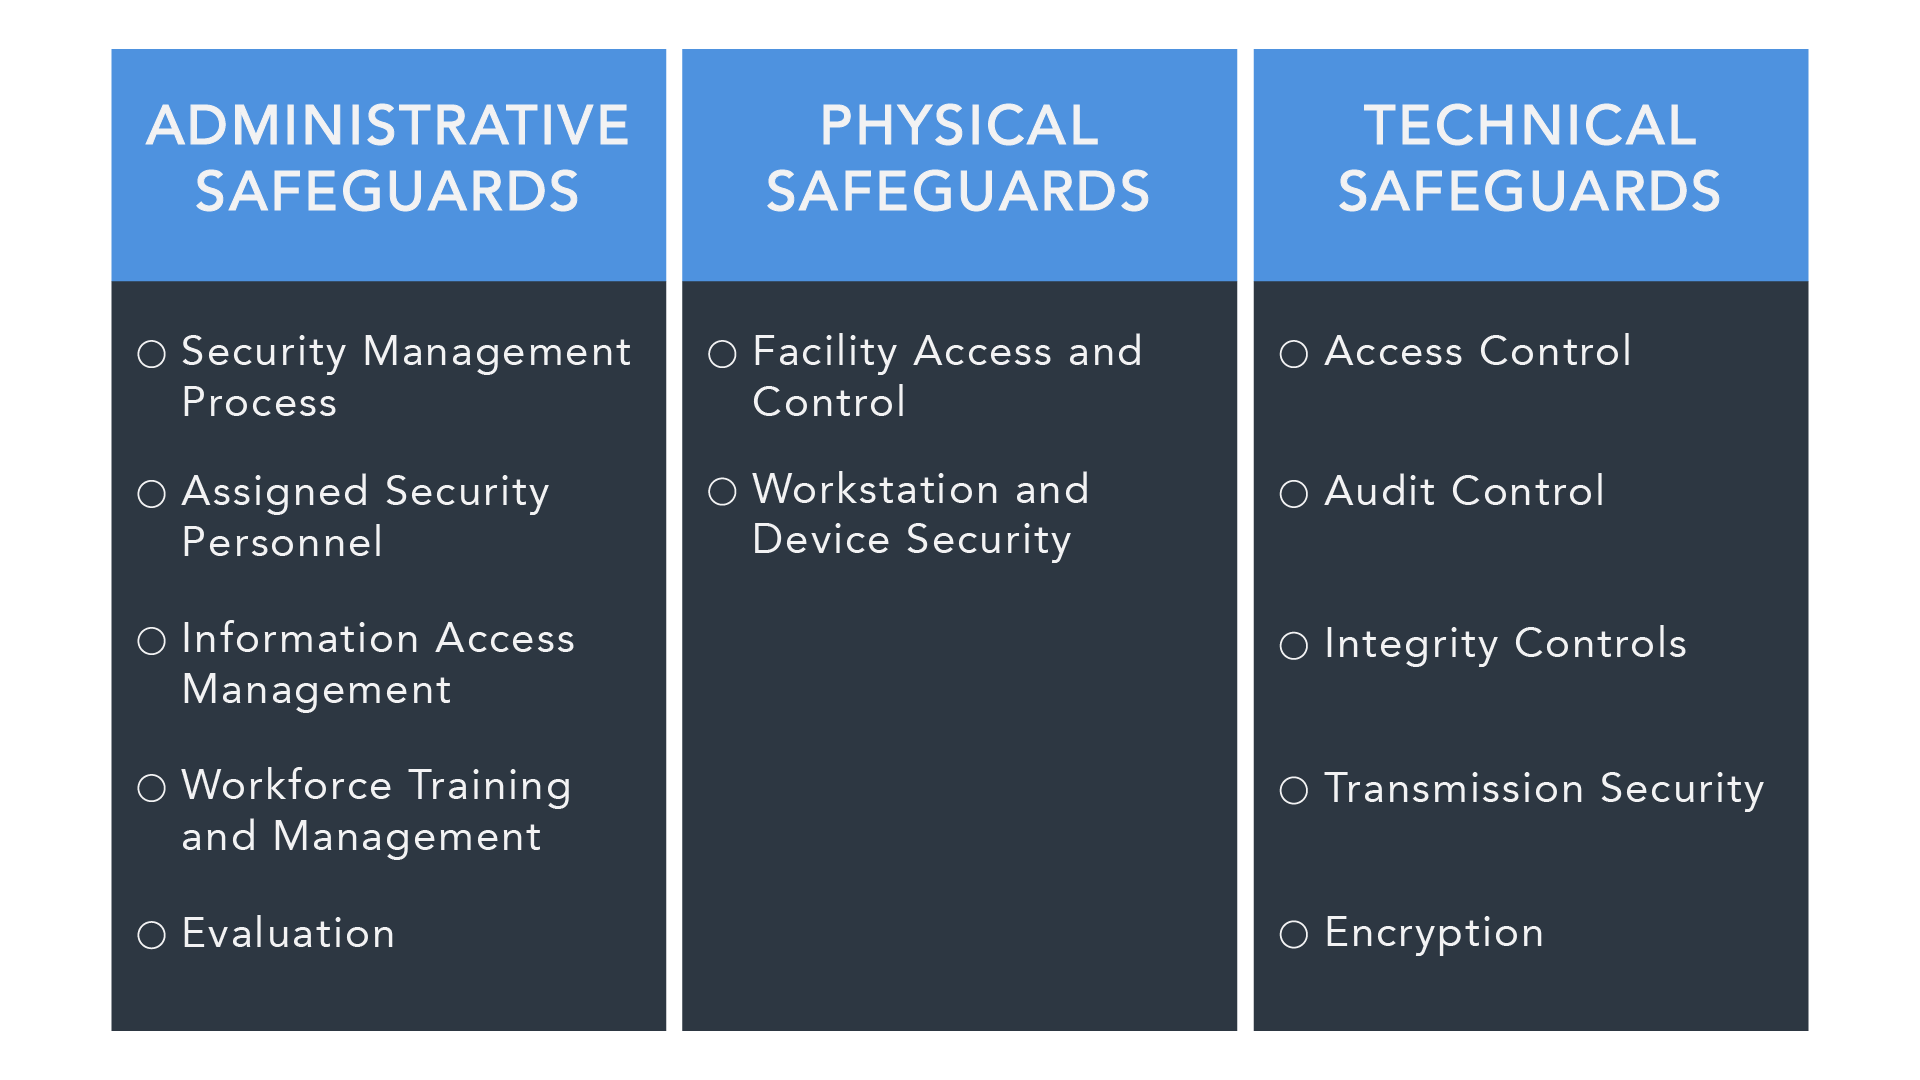 HIPAA features several security Standards: Administrative Safeguards, Physical Safeguards, and Technical Safeguards